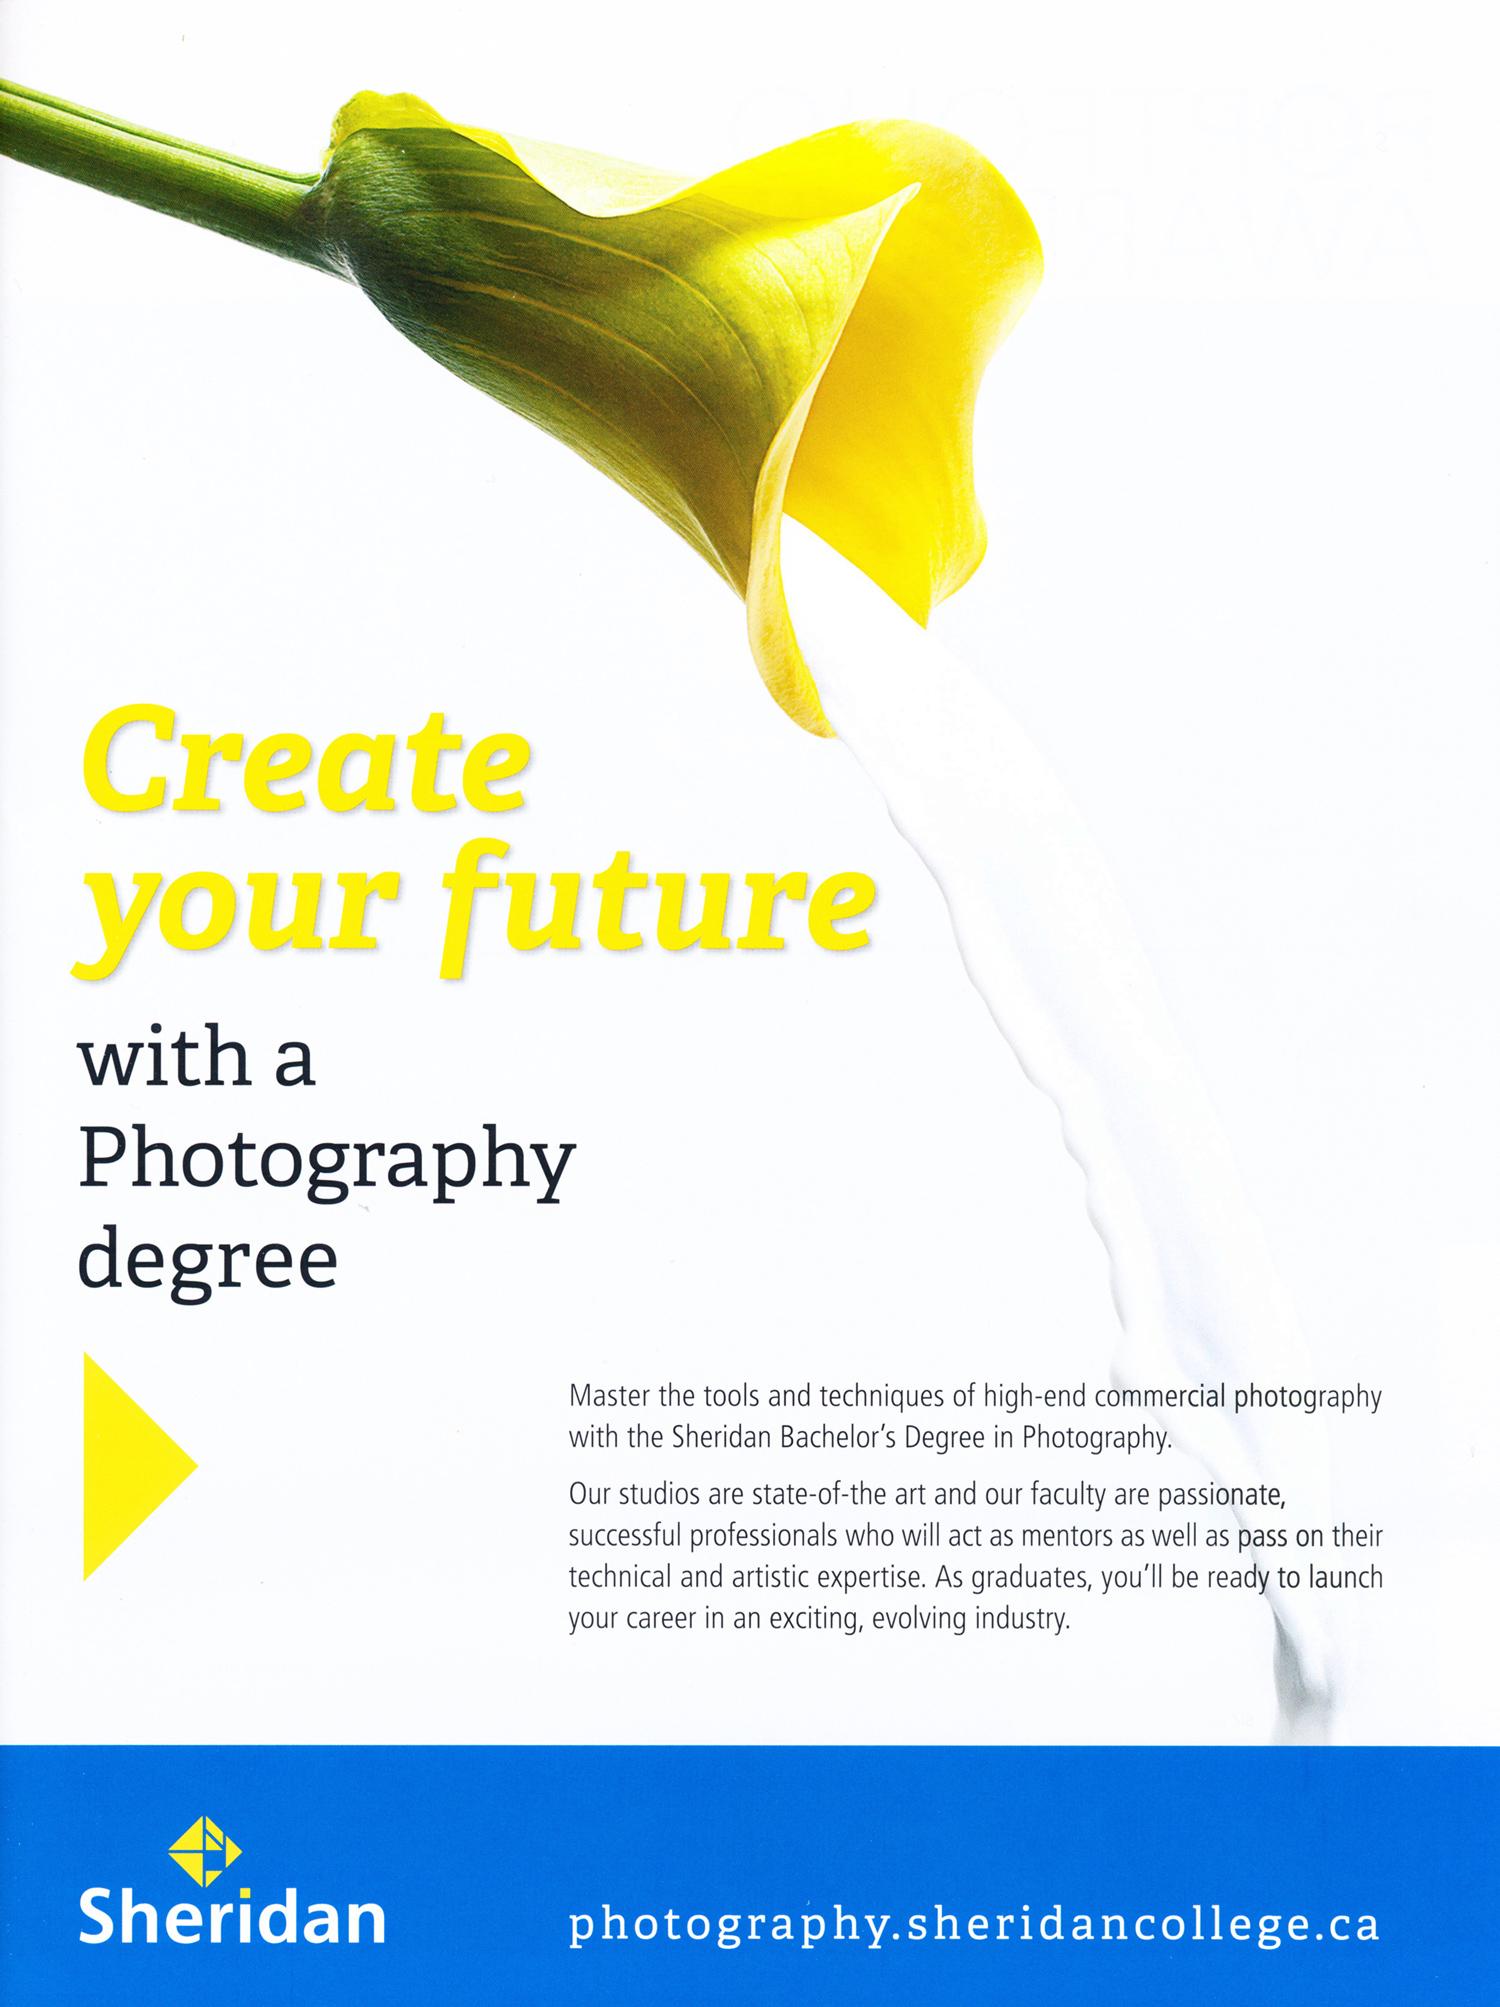 Ad for the Photography Program at Sheridan College / Published in Photo life & Photo ed